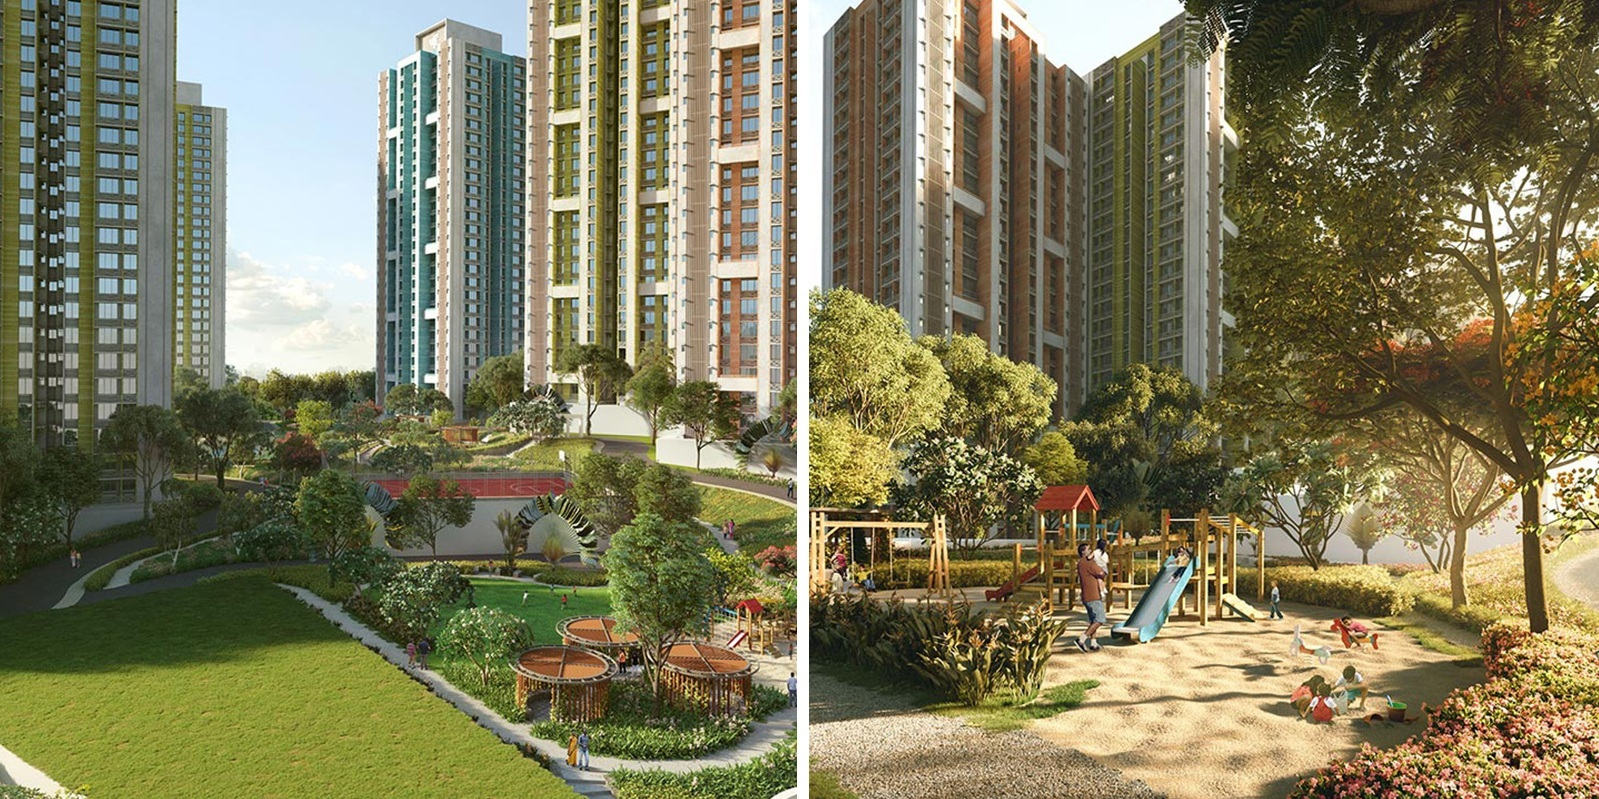 wadhwa wise city south block phase 1 b3 wing c2 amenities features7